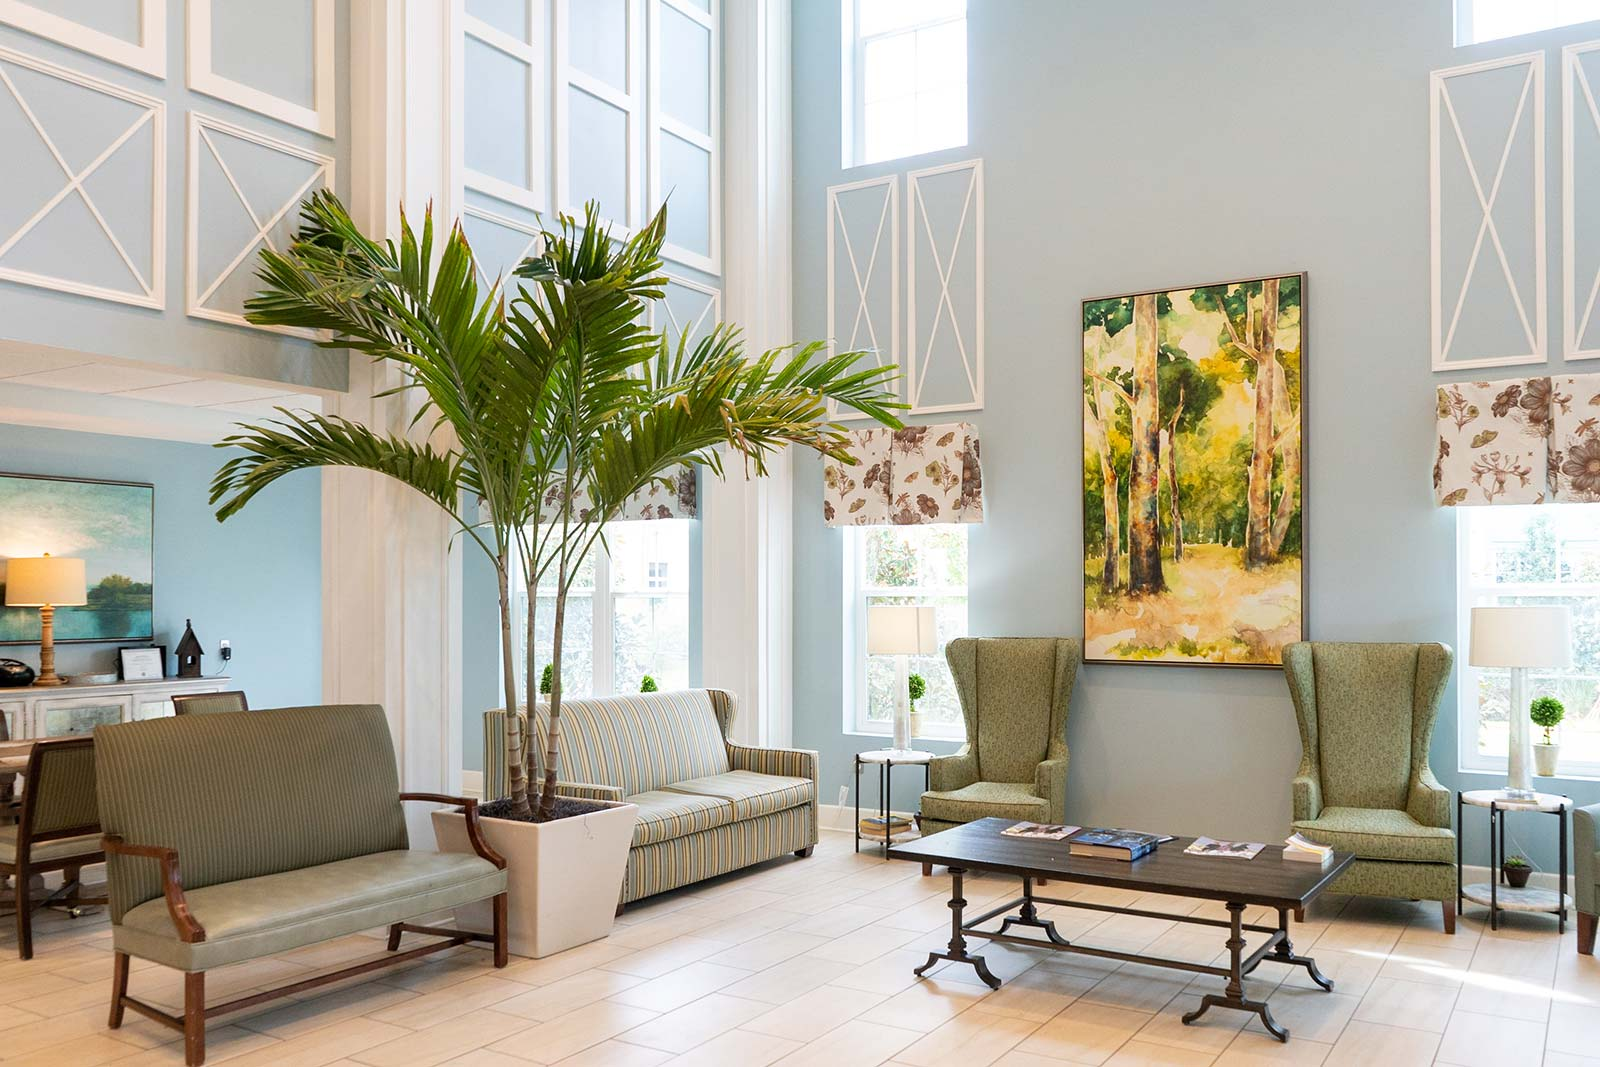 Front lobby and atrium at The Arbors of Gulf Breeze an Independent Living, Assisted Living and Memory Care community in Gulf Breeze, FL